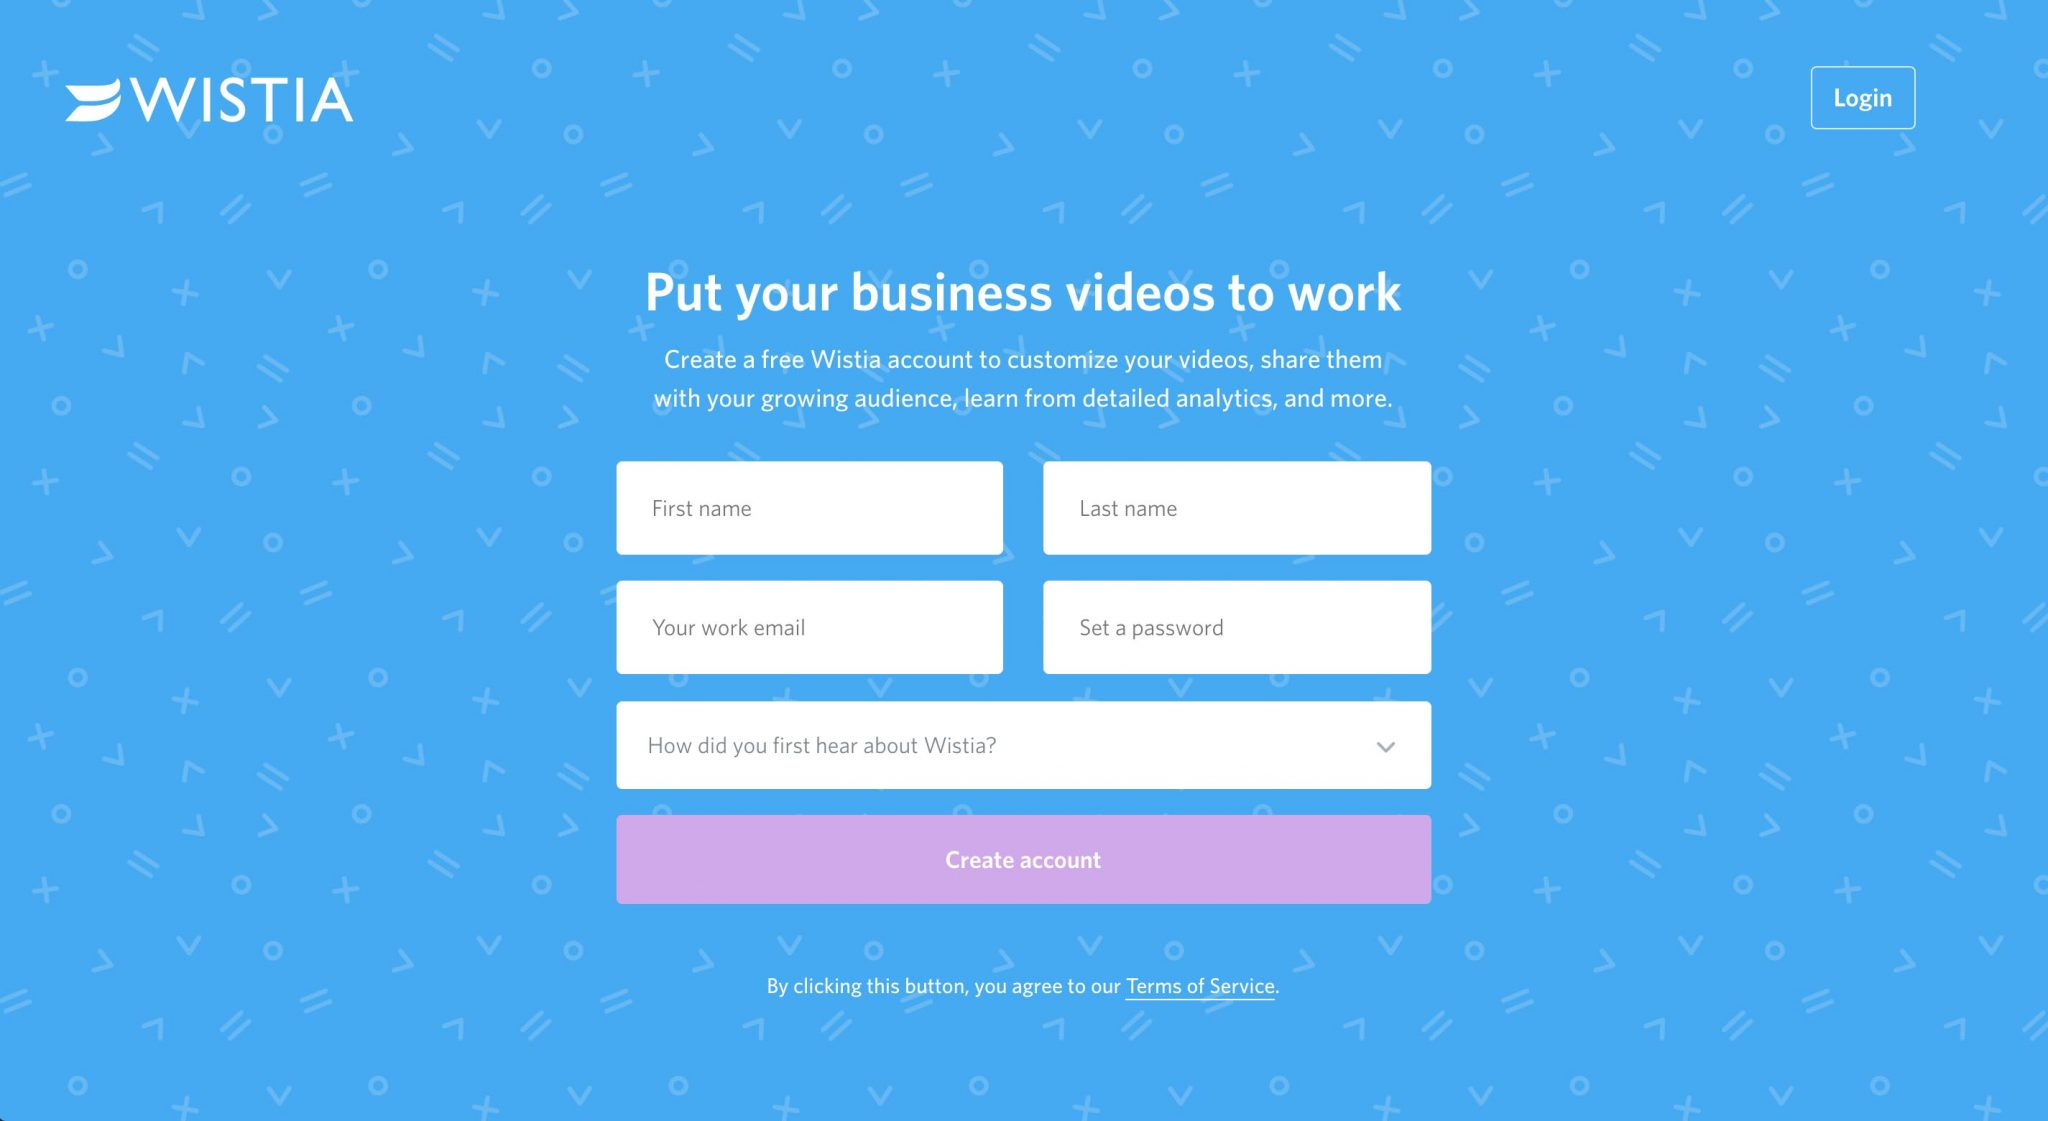 WISTIA Landing page - Put your business videos to work